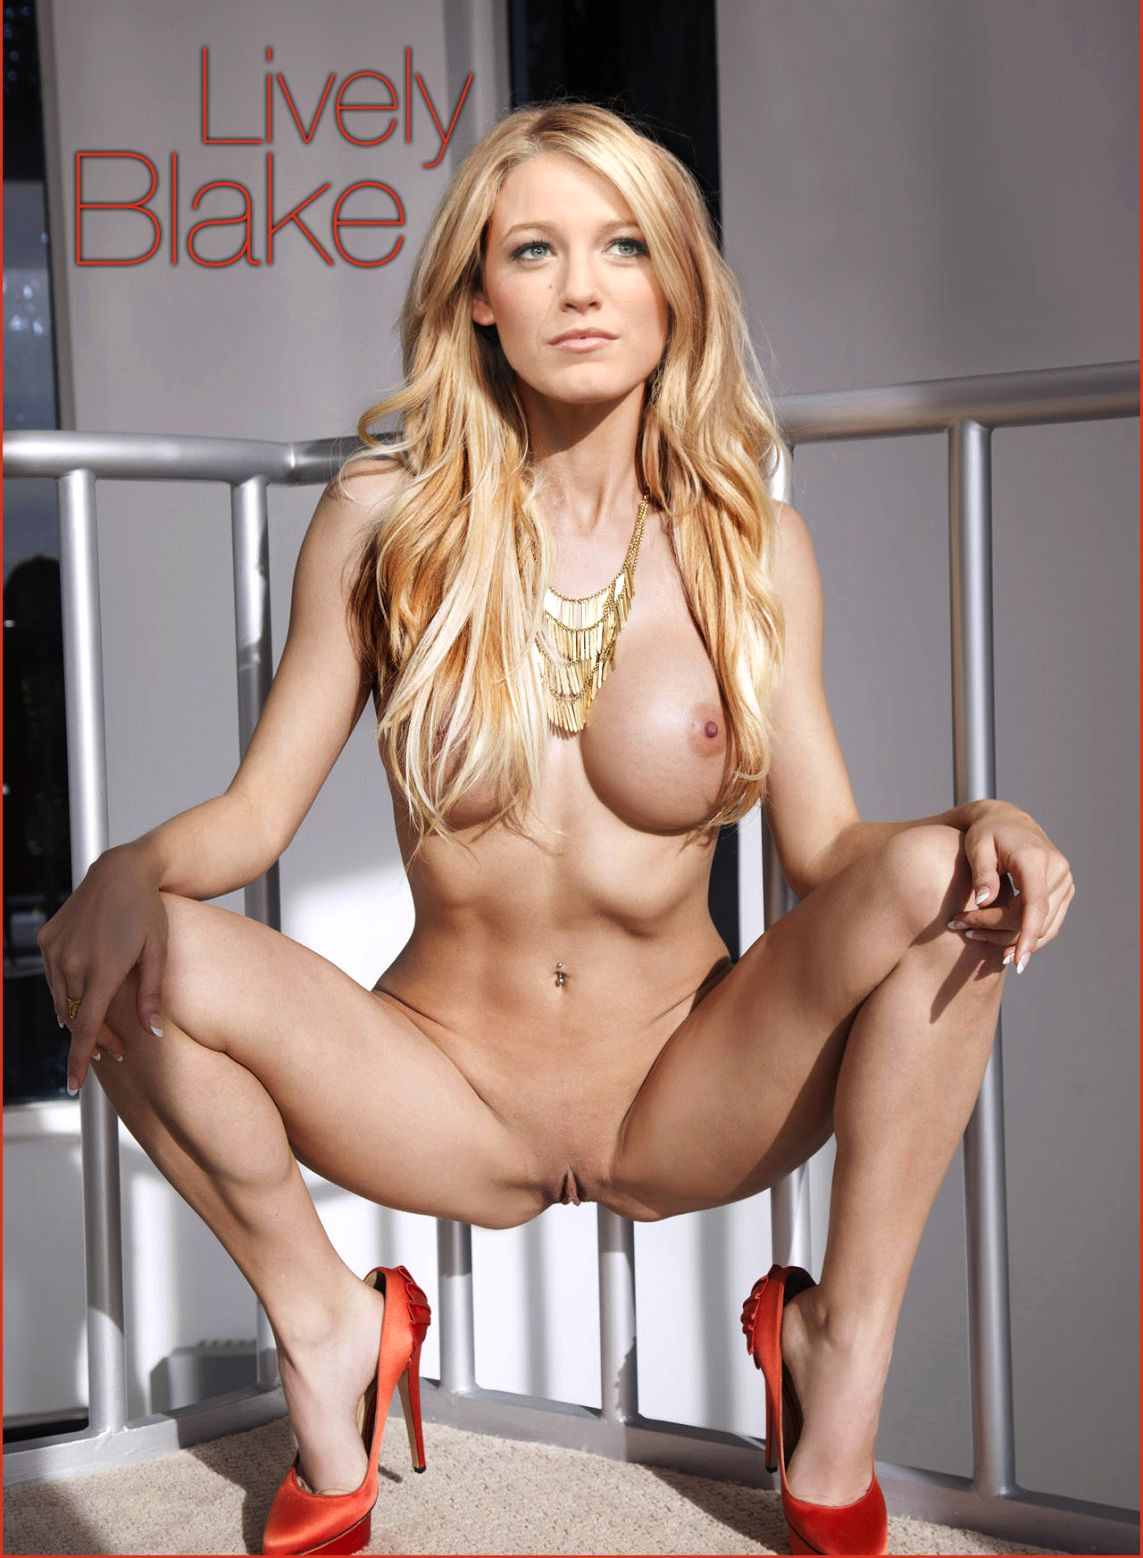 escondido-putting-blake-lively-porn-fakes-icarly